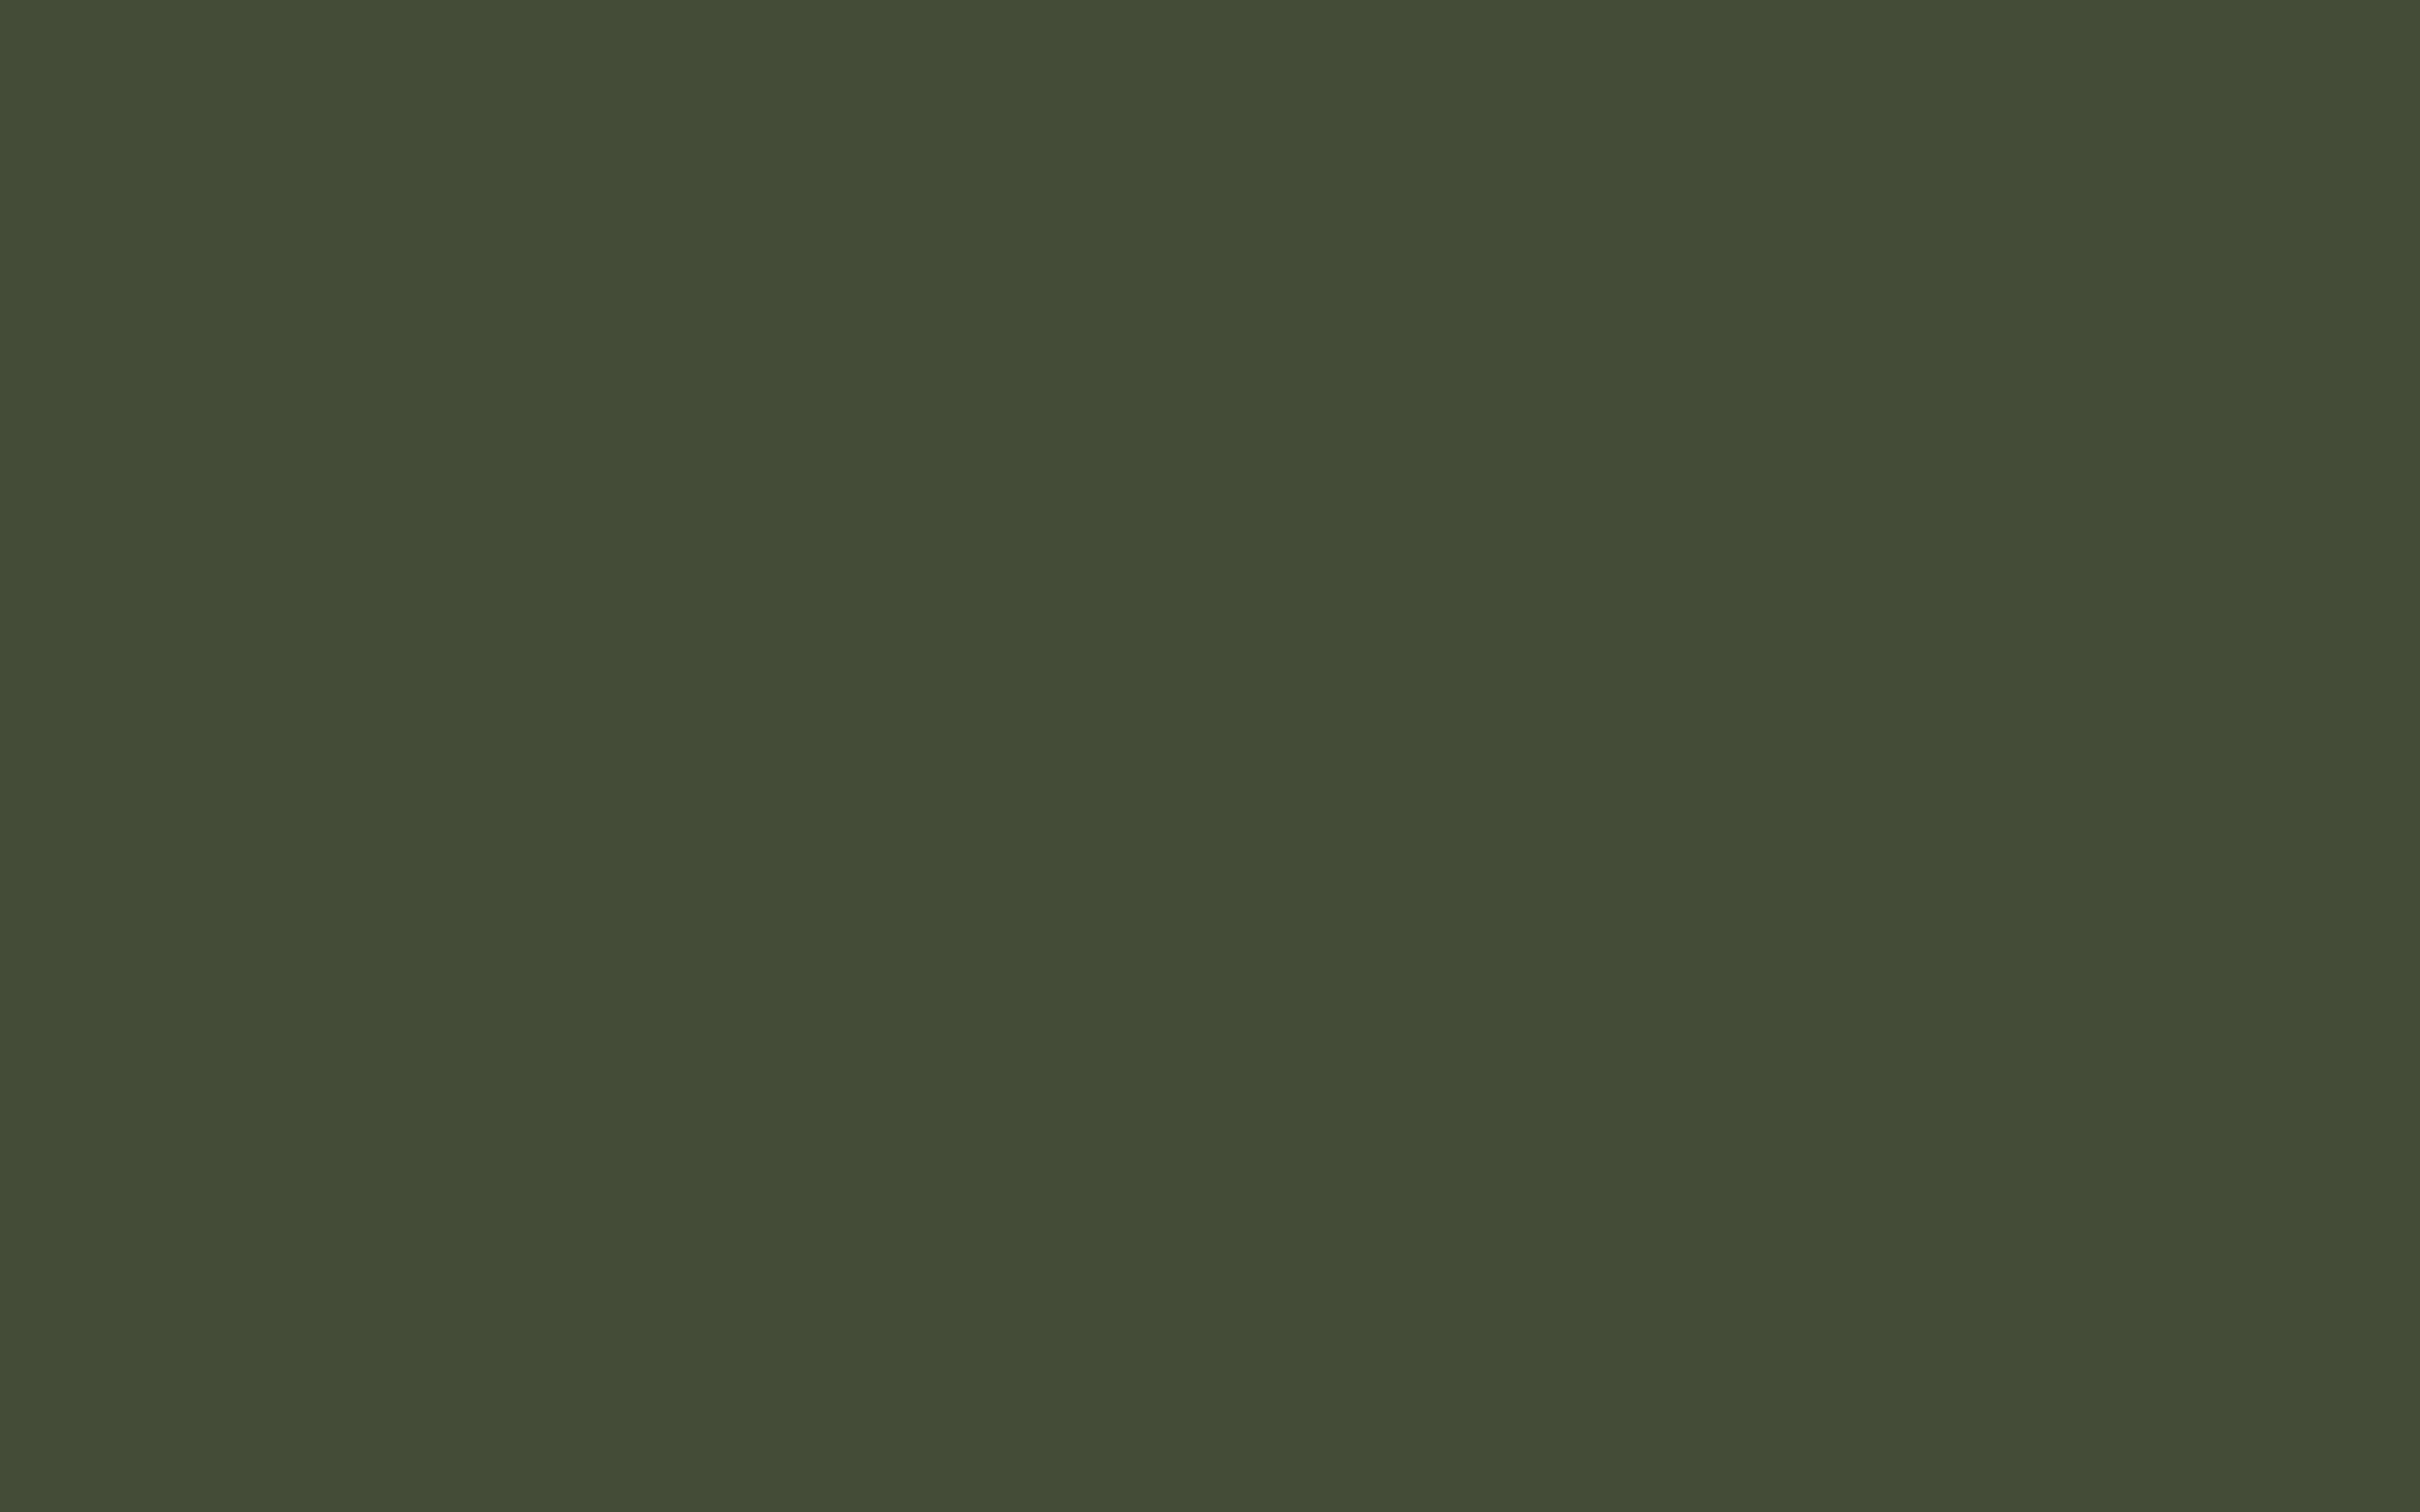 2880x1800 Rifle Green Solid Color Background